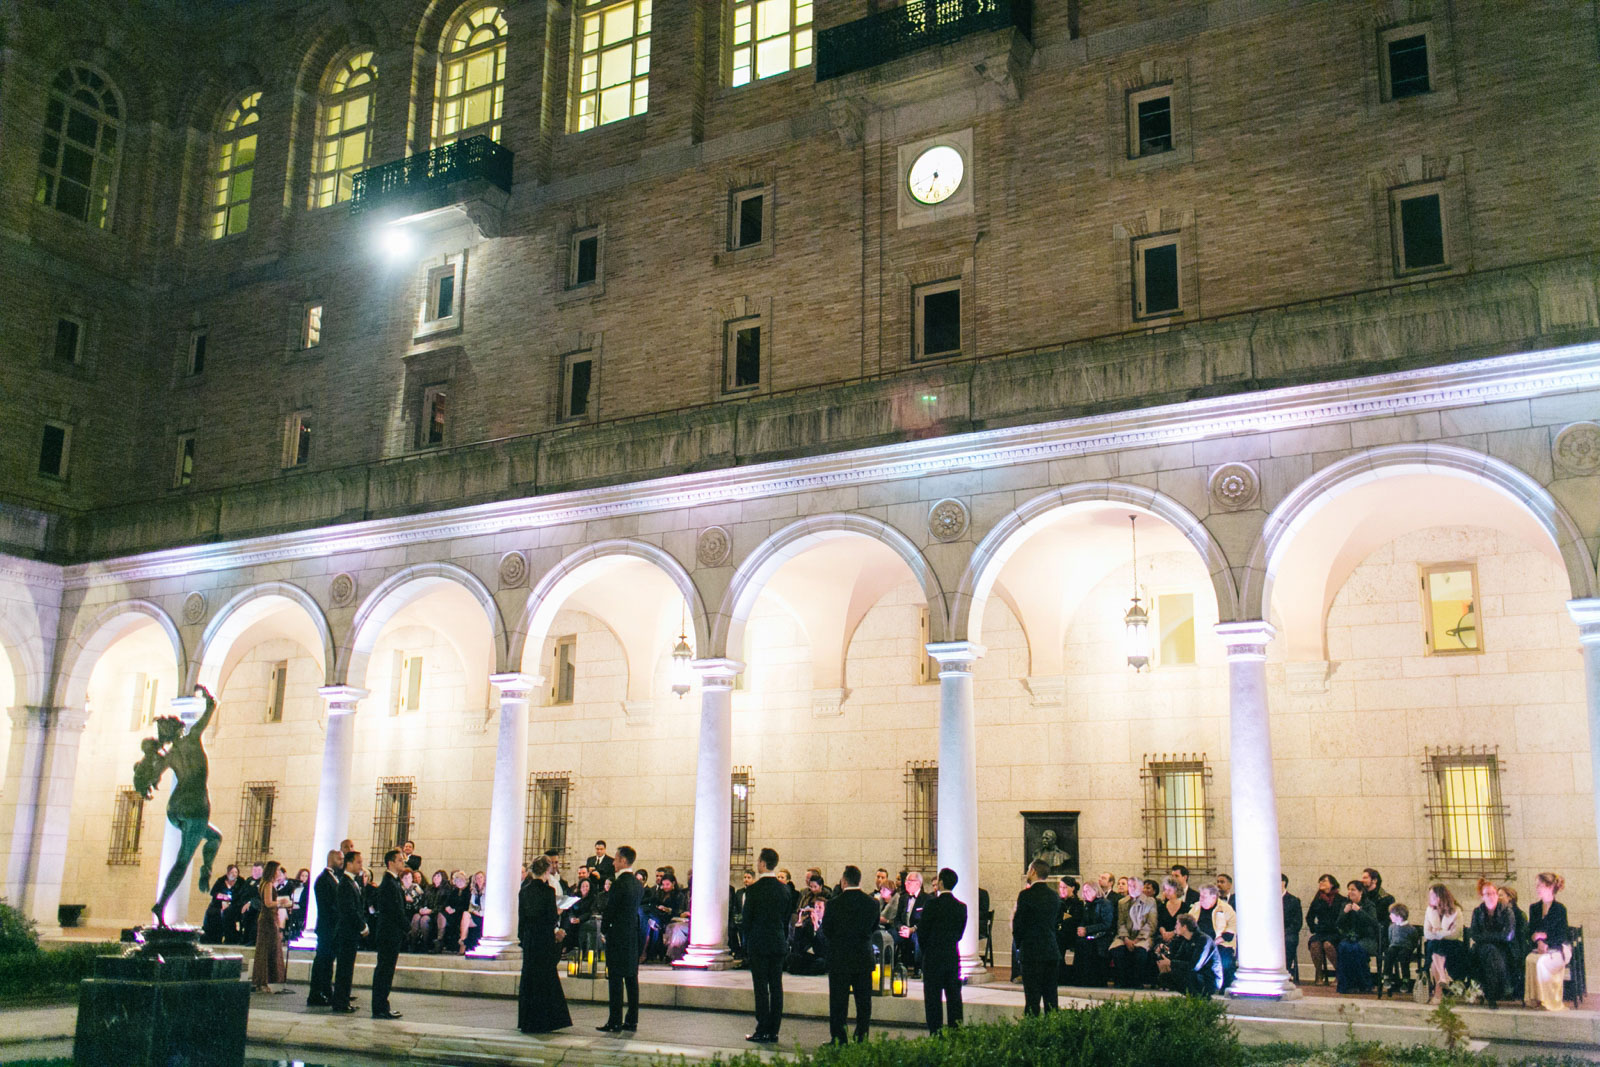 wedding ceremony in courtyard of Boston public library at night with Roman pillars